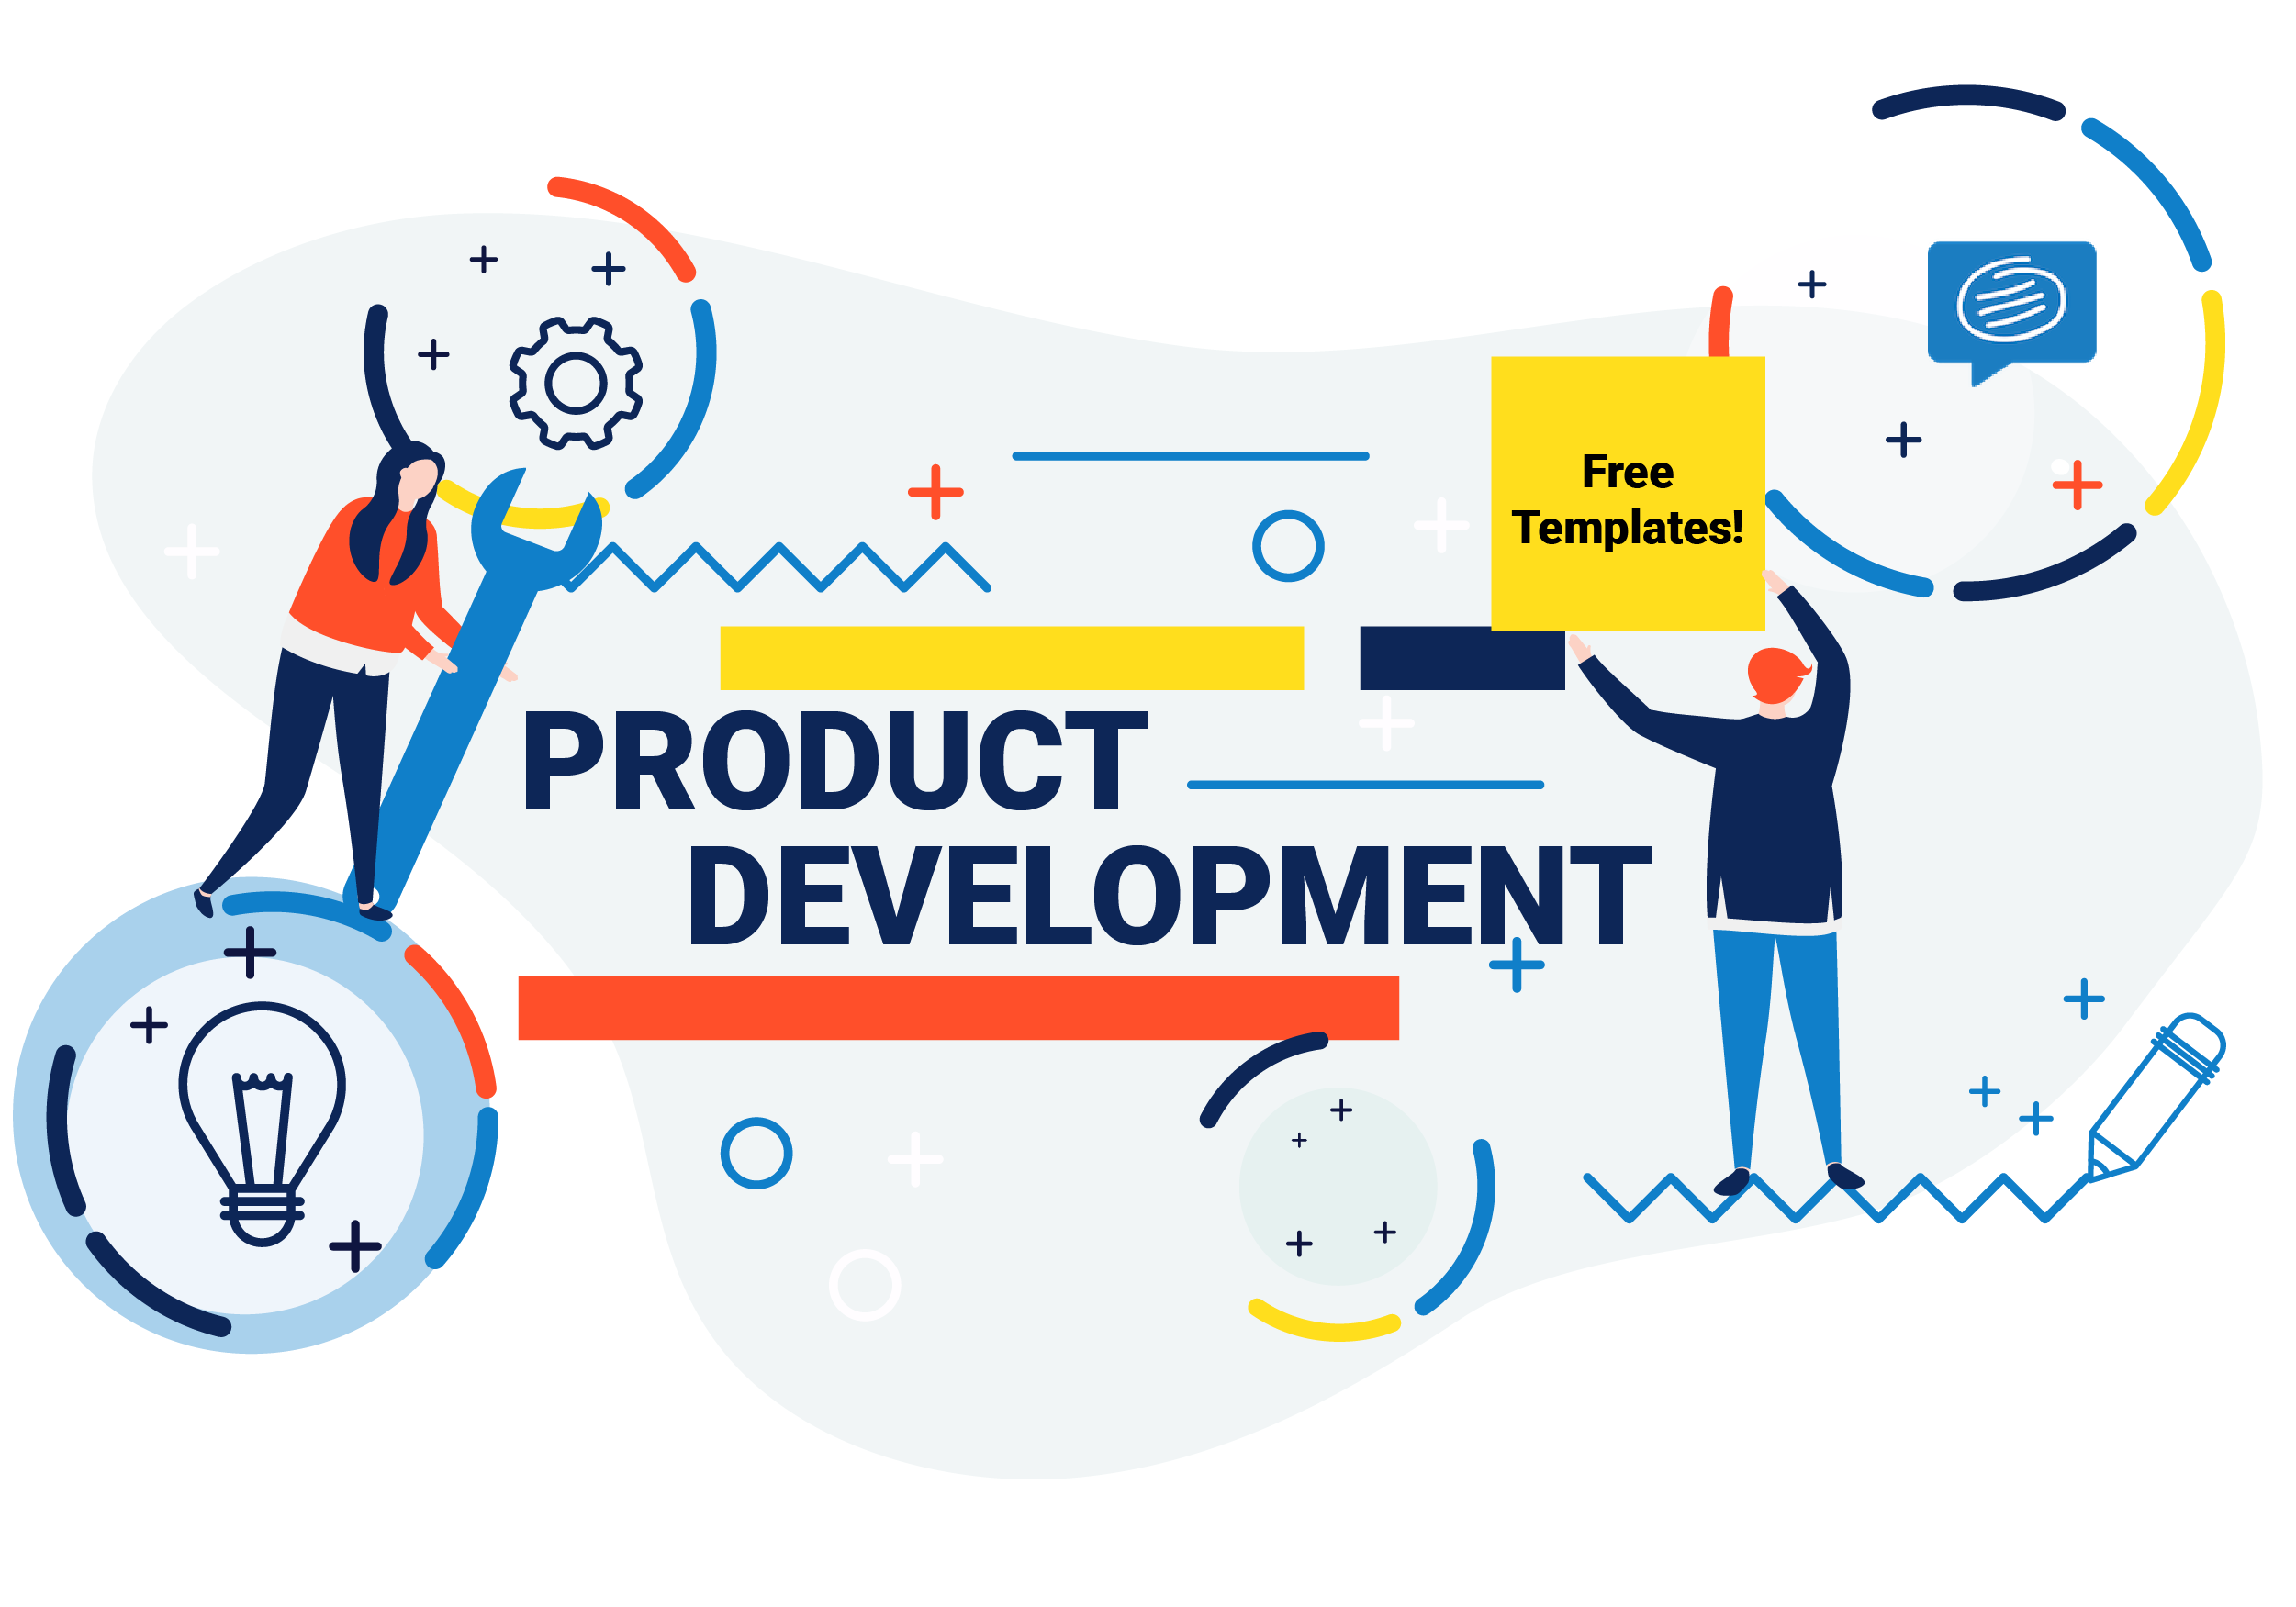 7 ultimate templates for every stage of the product development process